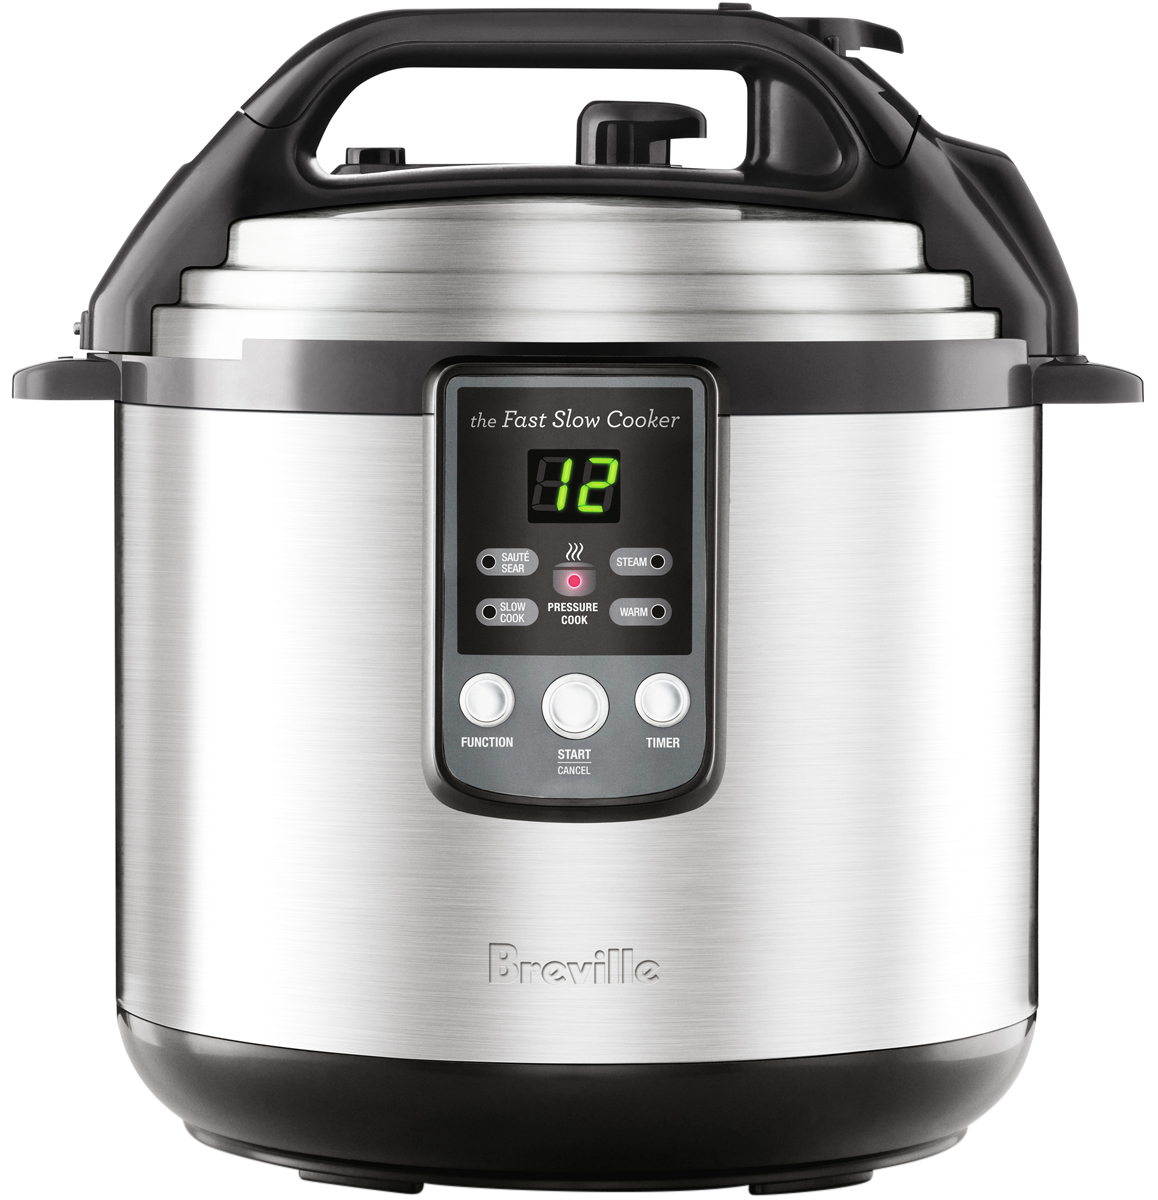 Breville The Fast Slow Cooker Bpr650 Reviews